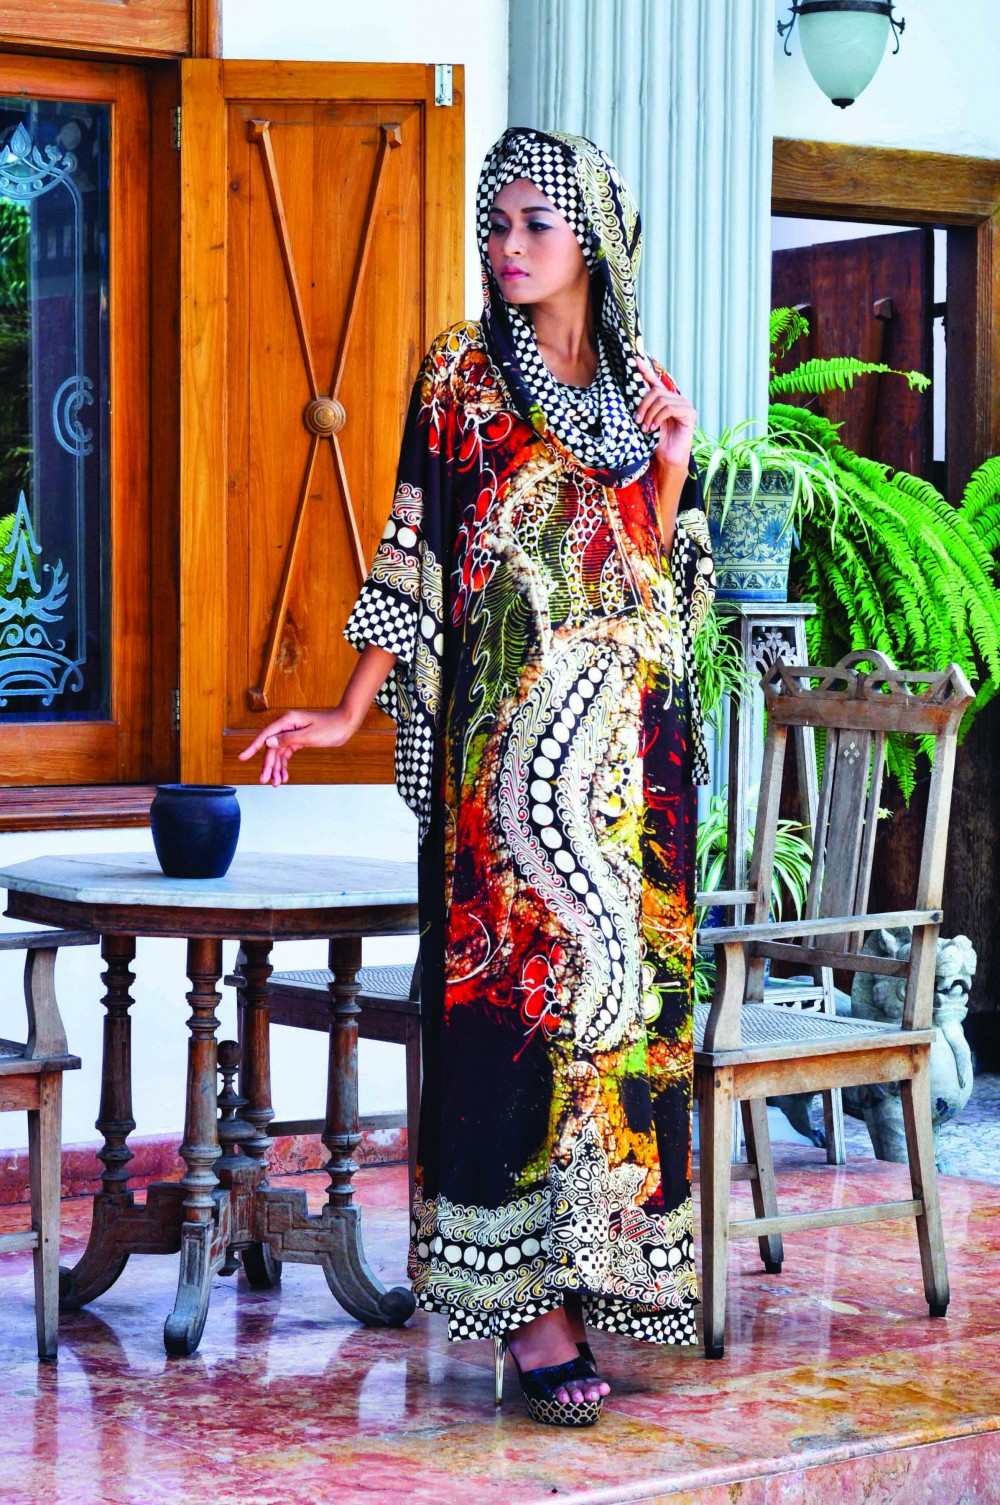 Batik Fashion - Model Baju Batik Sugeng Waskito